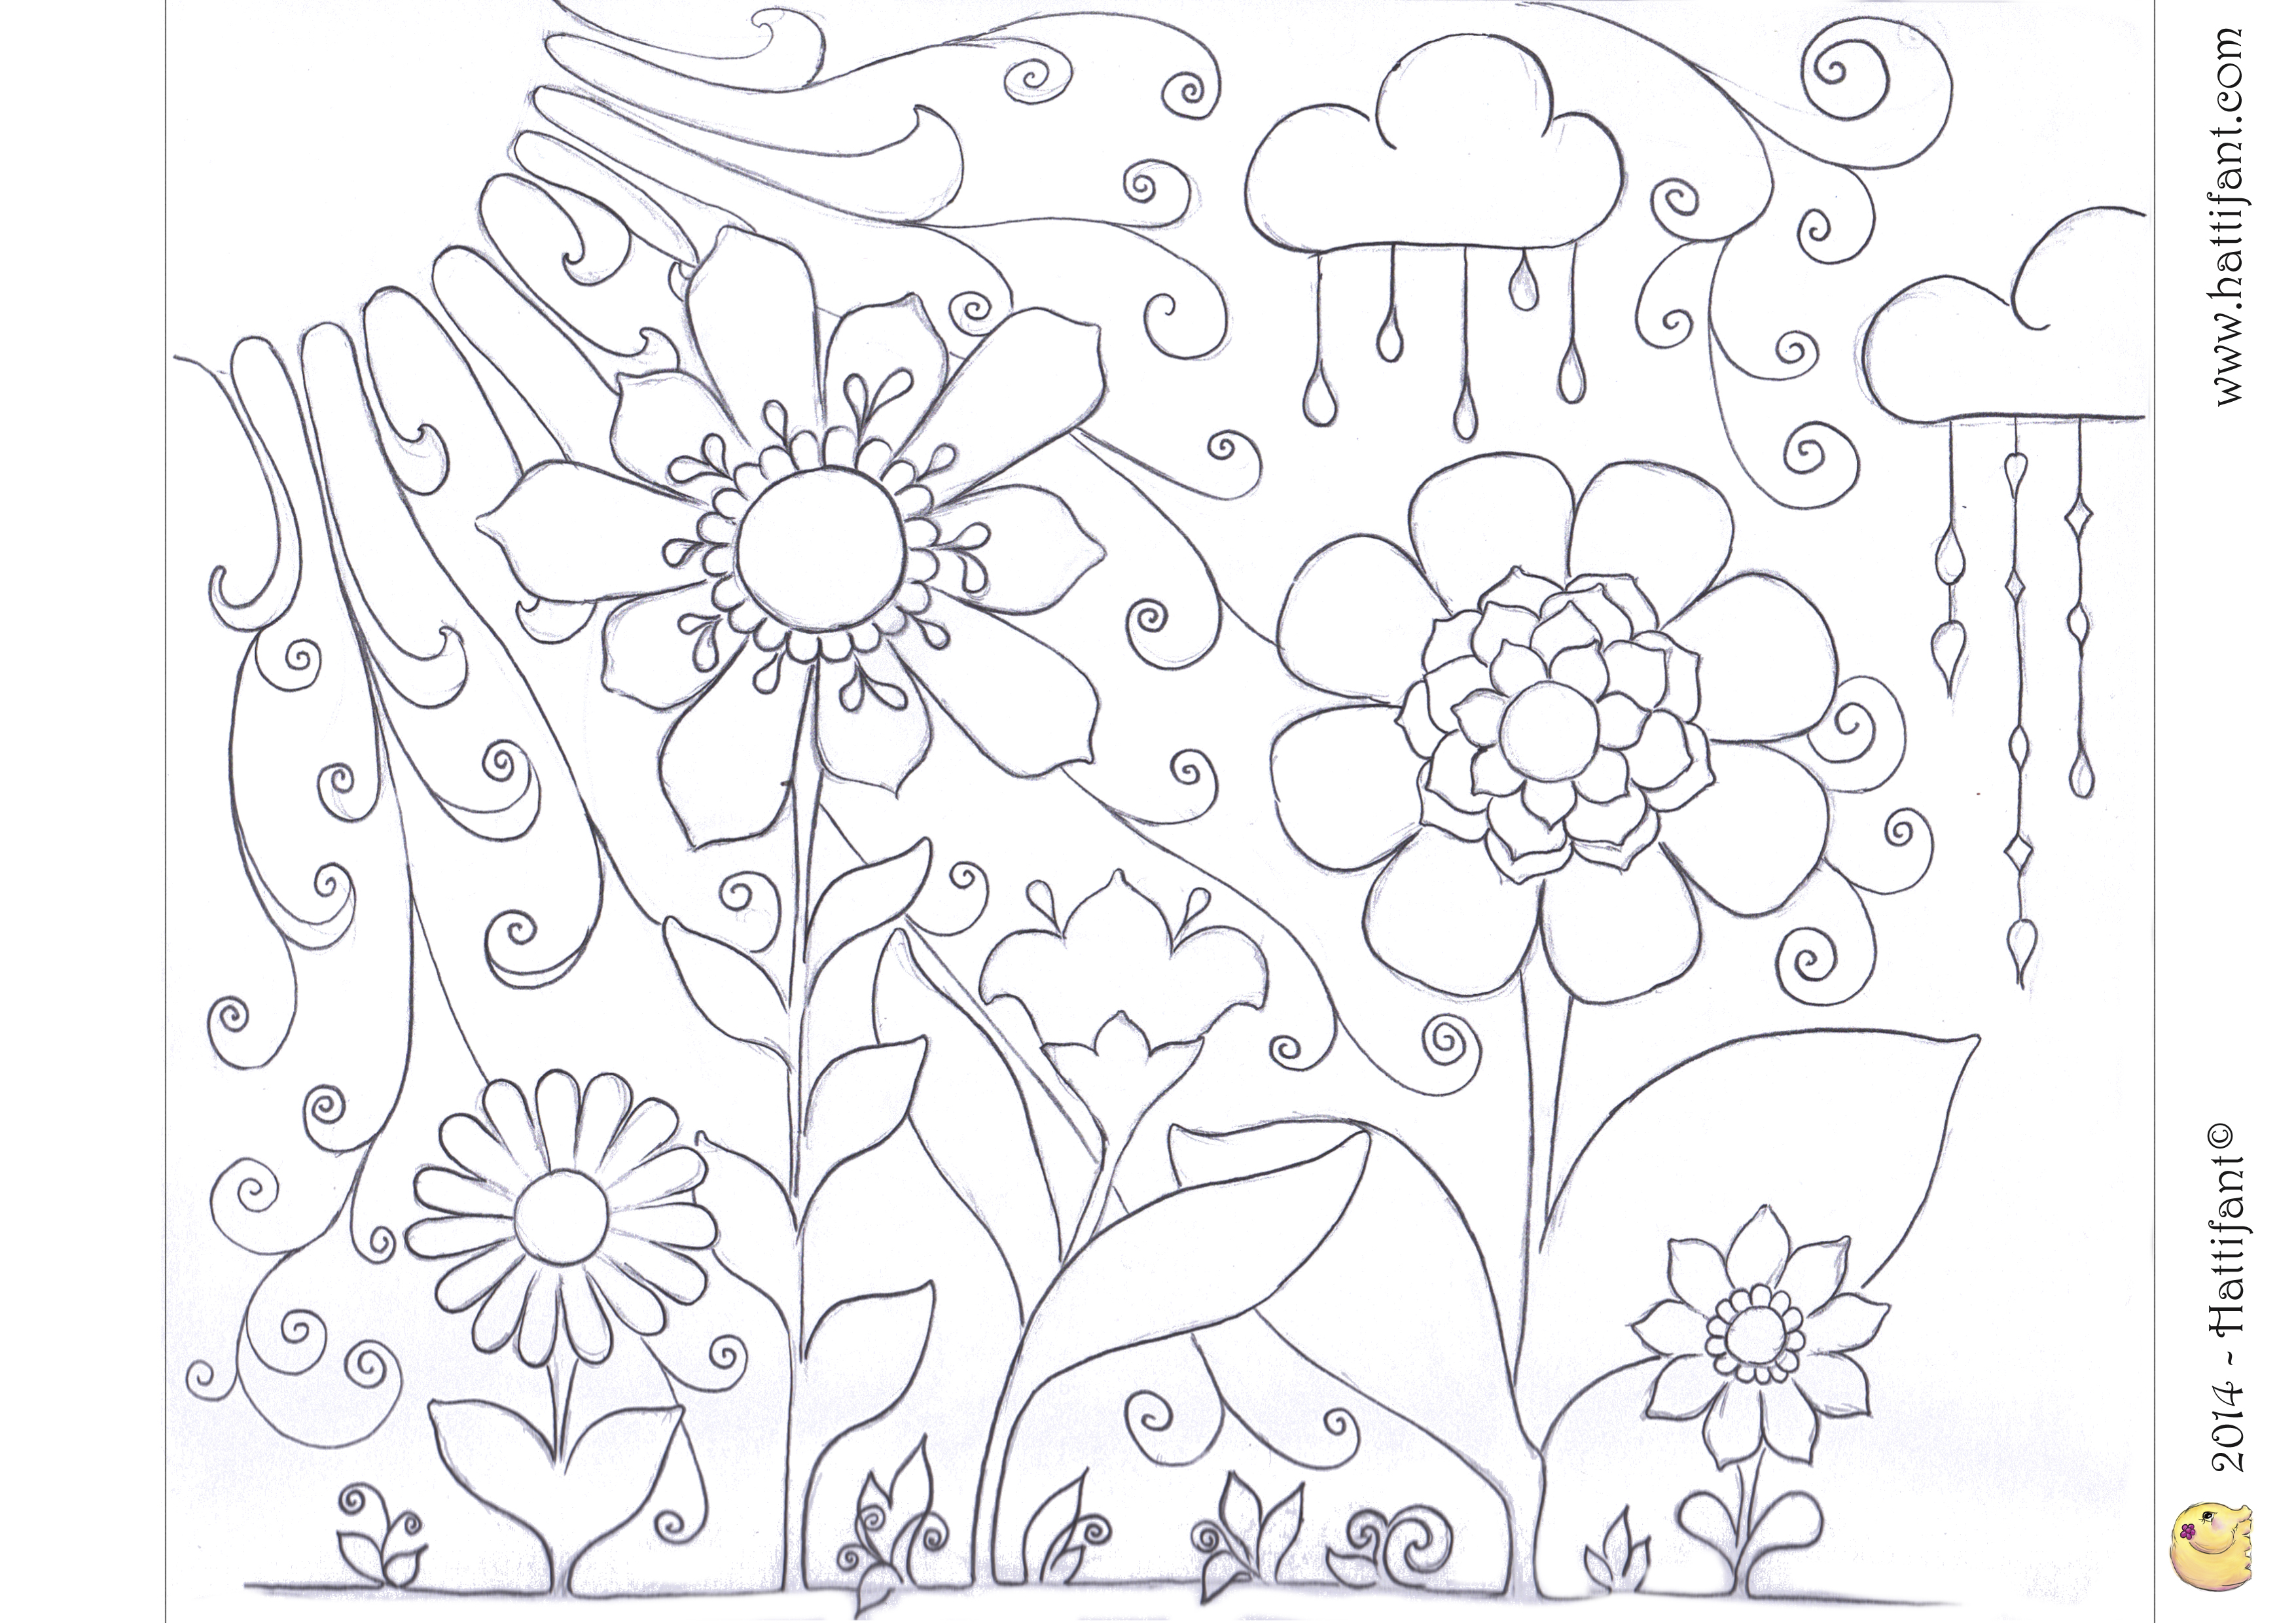 colourthespring - Spring Pictures To Colour